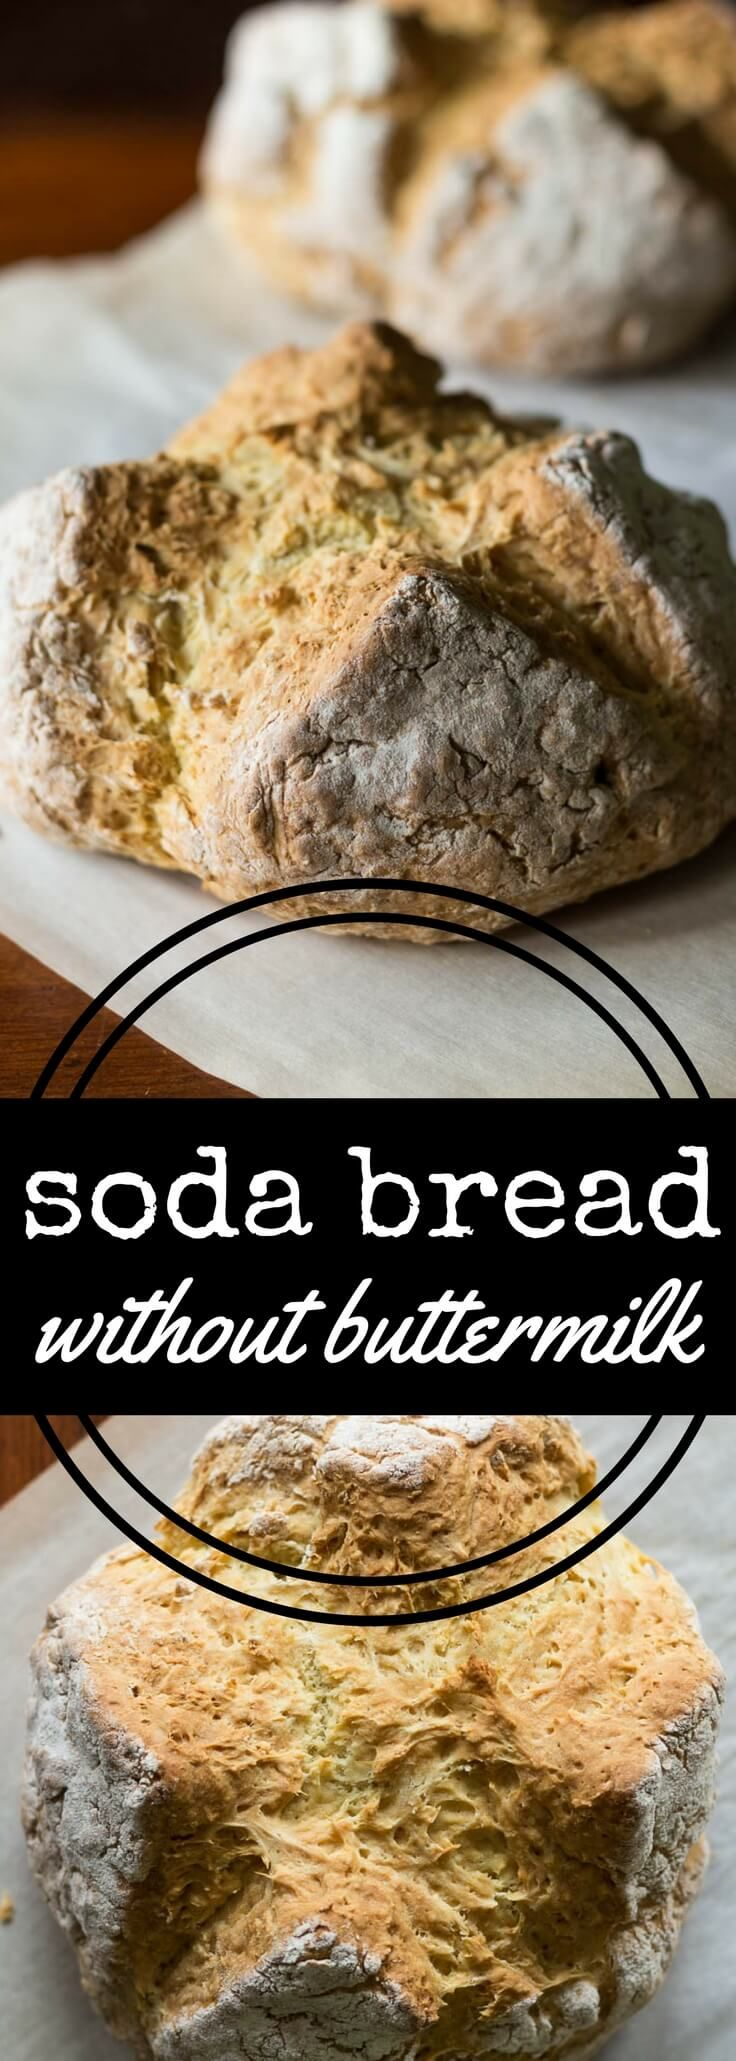 Soda Bread Without Buttermilk Recipe Soda Bread Without Buttermilk Soda Bread Vegan Soda